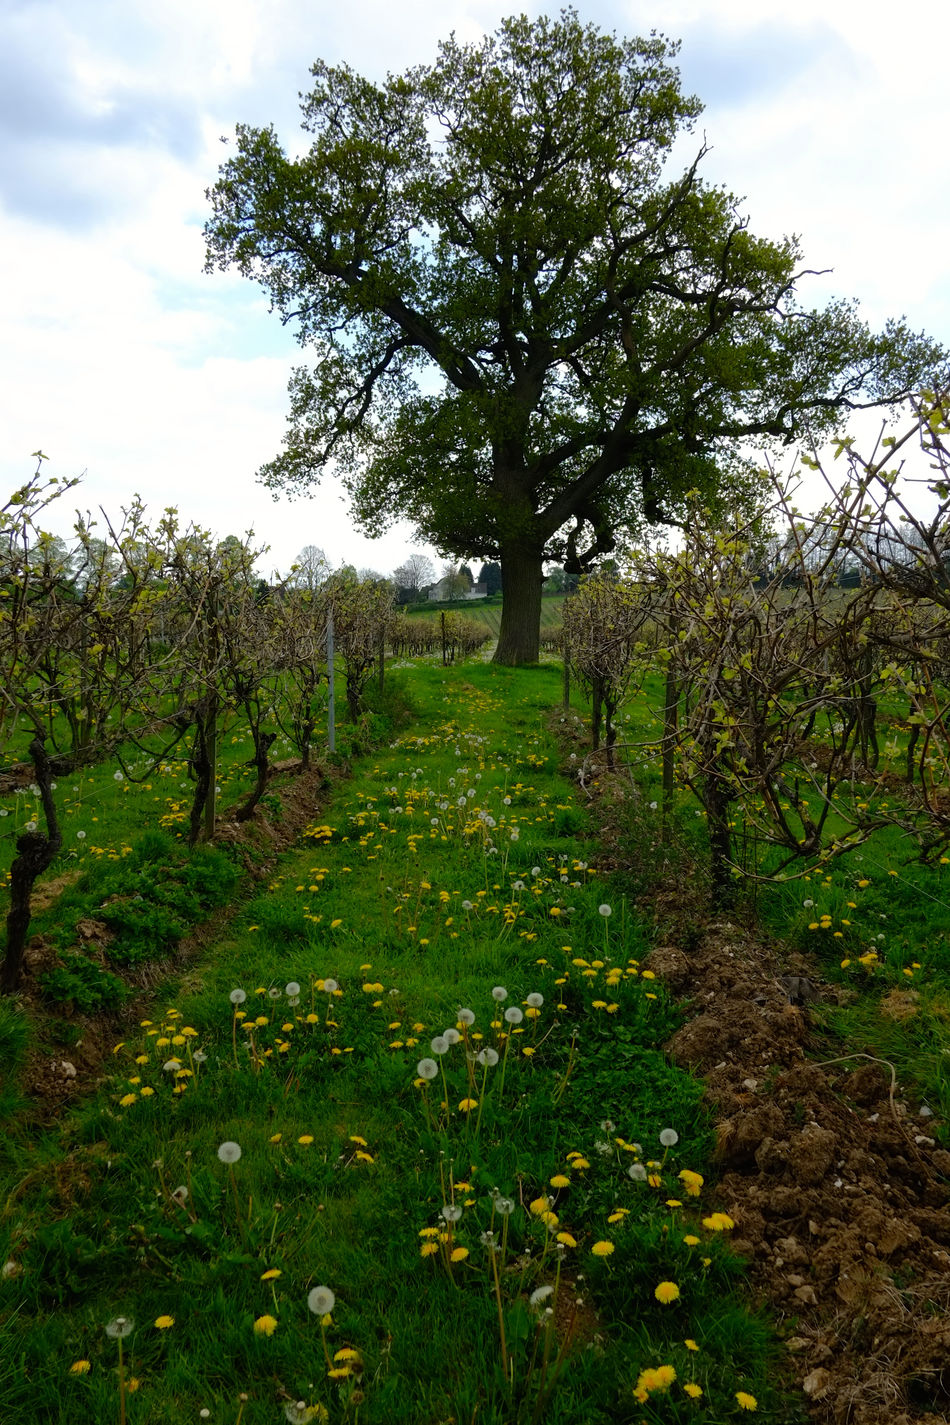 Vineyard in the spring Agriculture Beauty In Nature Countryside Day Farm Field Fresh Grapes Green Color Growth Growth Landscape Nature Nature Organic Outdoors Plants Scenics Spring Tranquil Scene Tranquility Tree Vineyard Wine Wine Moments Break The Mold